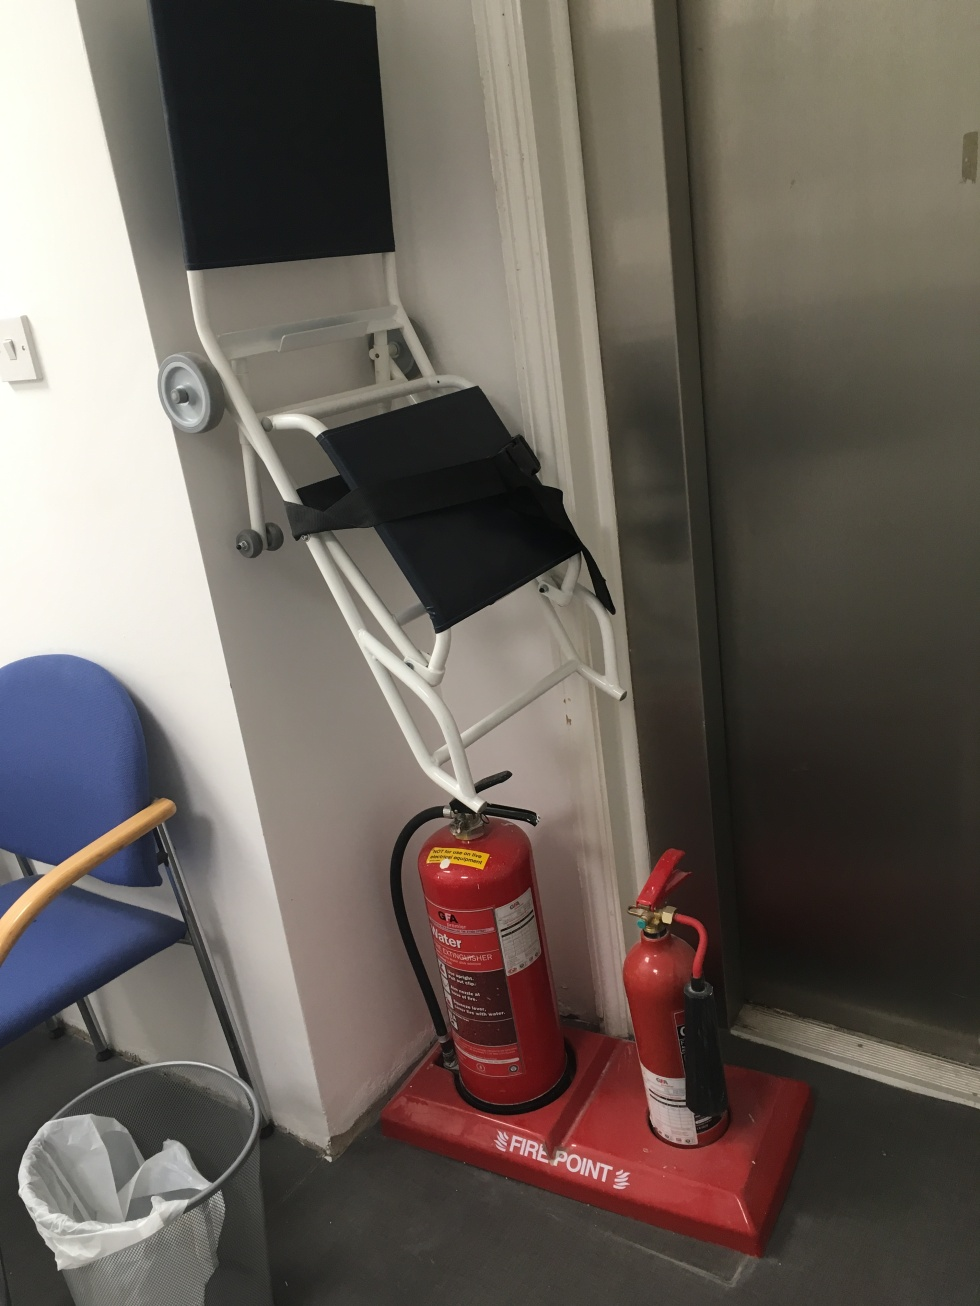 seats, GP, hospital extinguishers